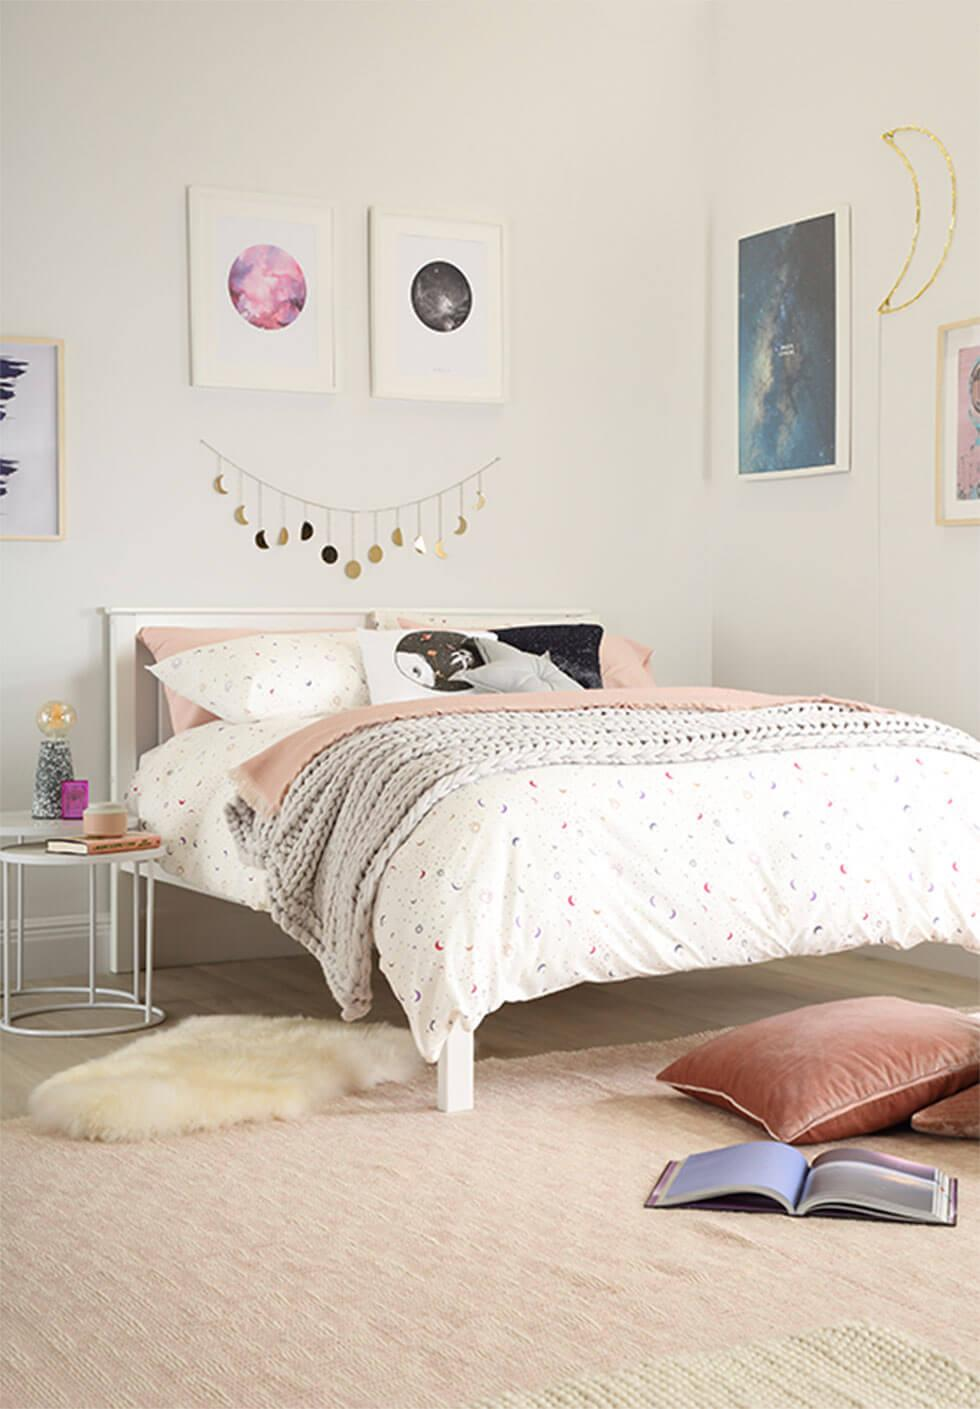 A cosmic space inspired bedroom with metal garlands and art on the walls.